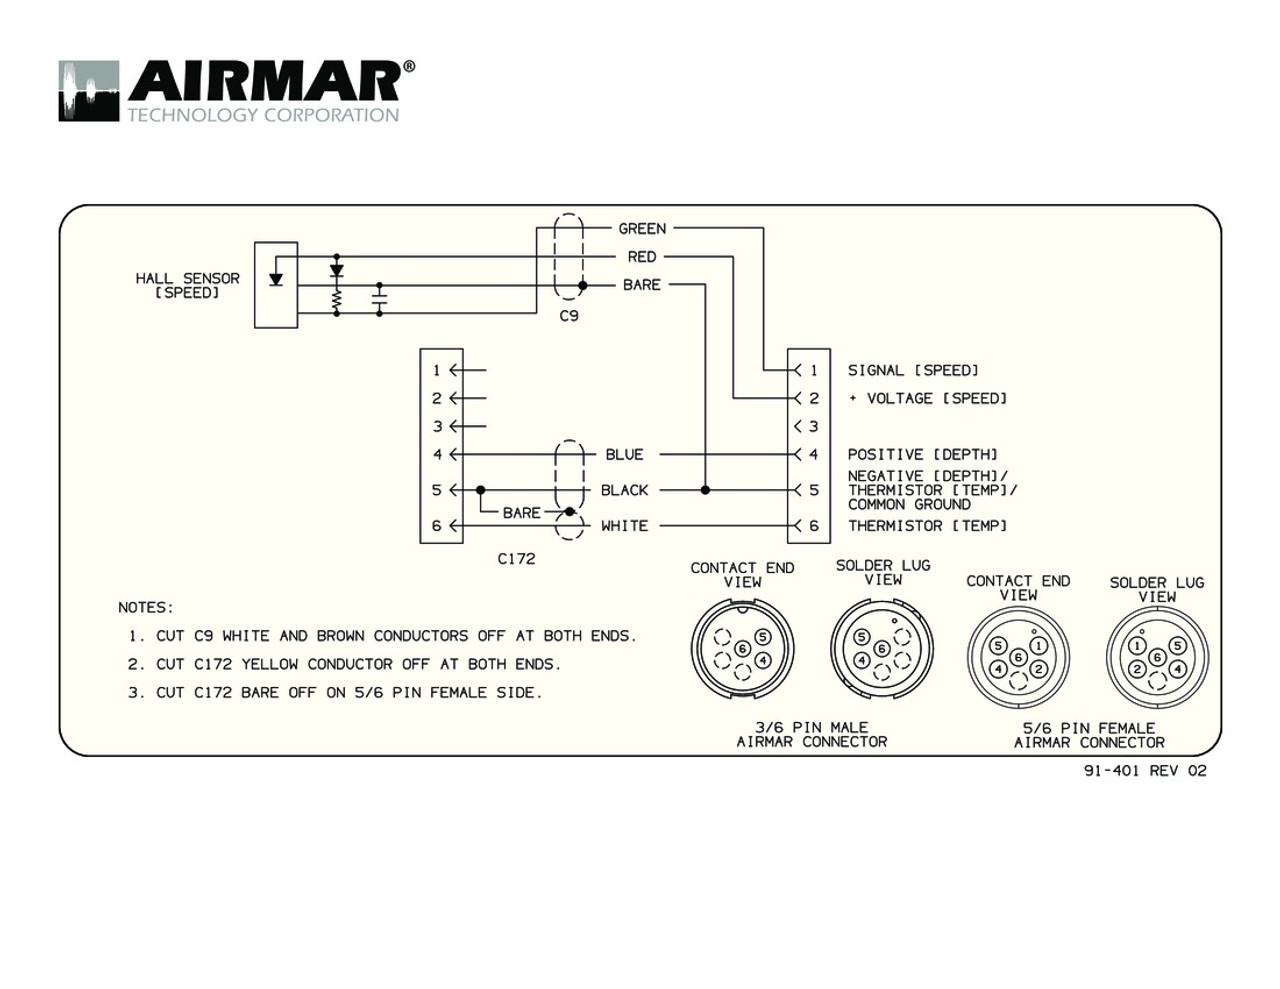 lowrance transducer wiring diagram wiring library. Black Bedroom Furniture Sets. Home Design Ideas